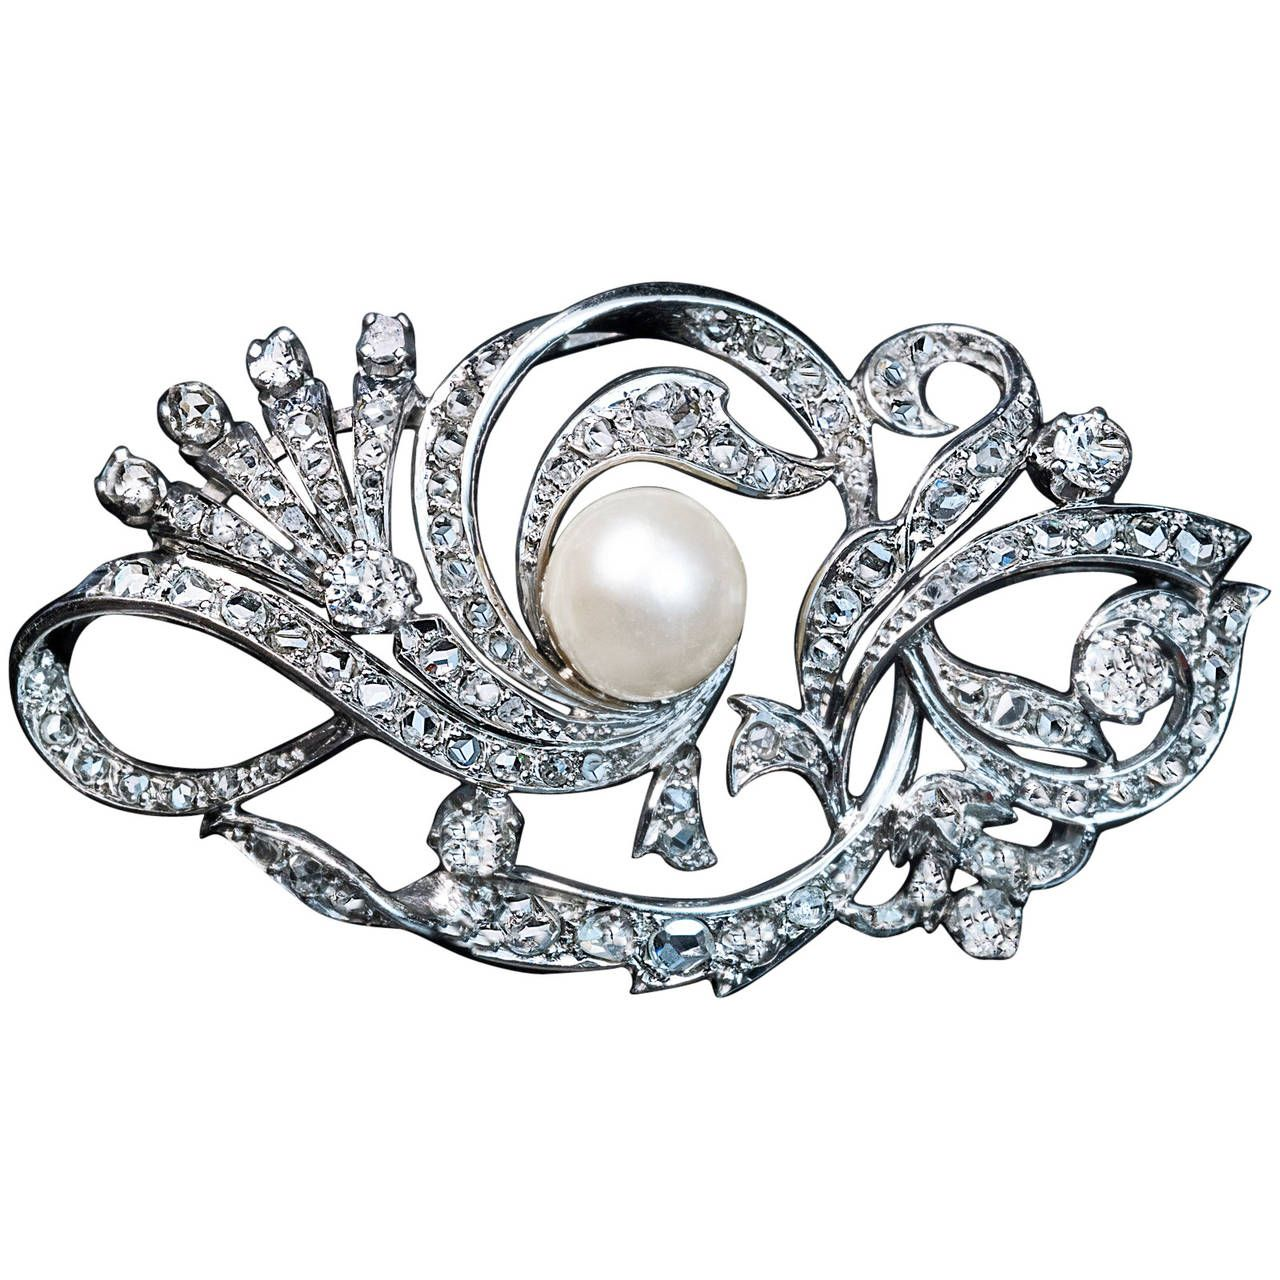 Pearl Diamond Platinum Brooch C1920. The brooch is designed as a stylized interlaced scrolling floral designs embellished with numerous old cut brilliant and rose diamonds and a 9 mm pearl. Estimated total diamond weight 3 carats